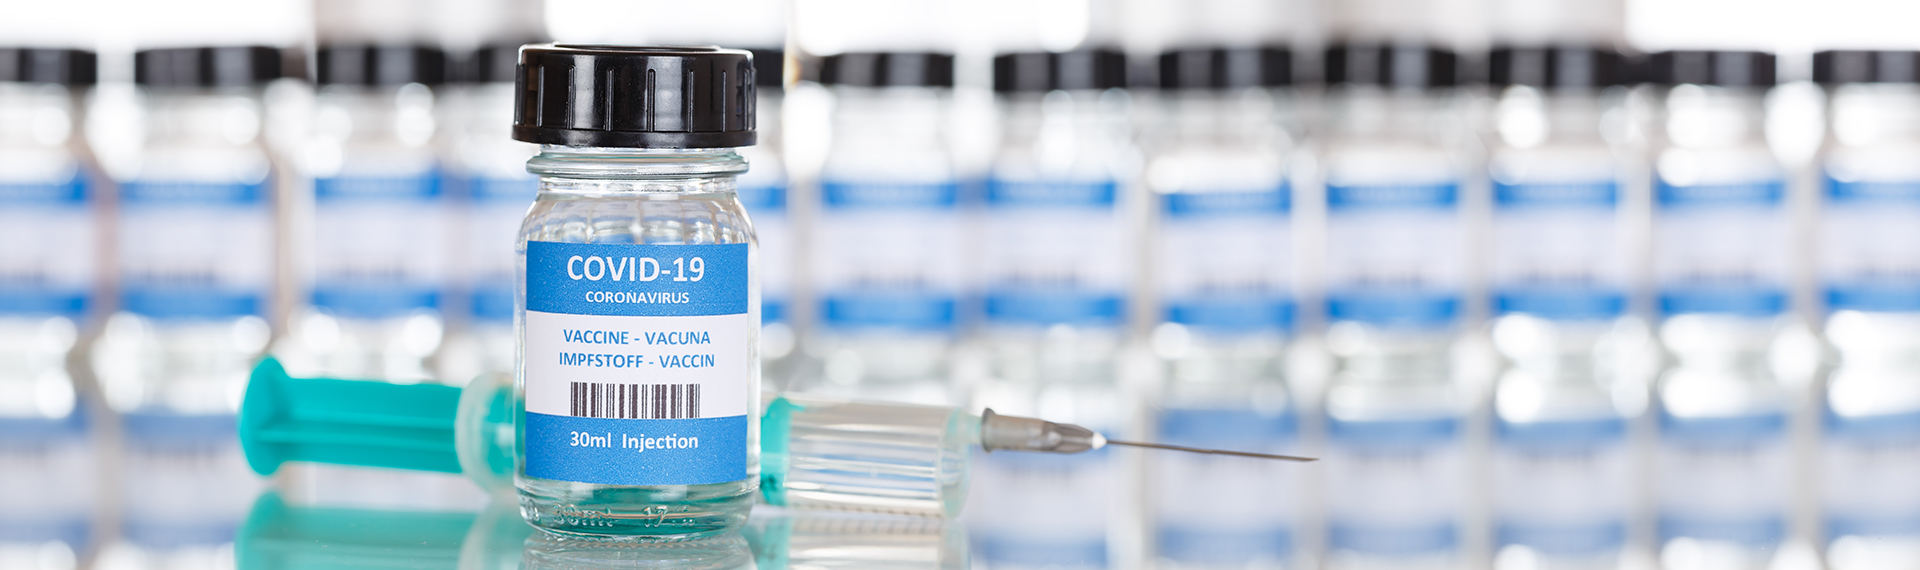 Meet The UC Doctor Trying To Change Minds Skeptical Of The COVID Vaccine